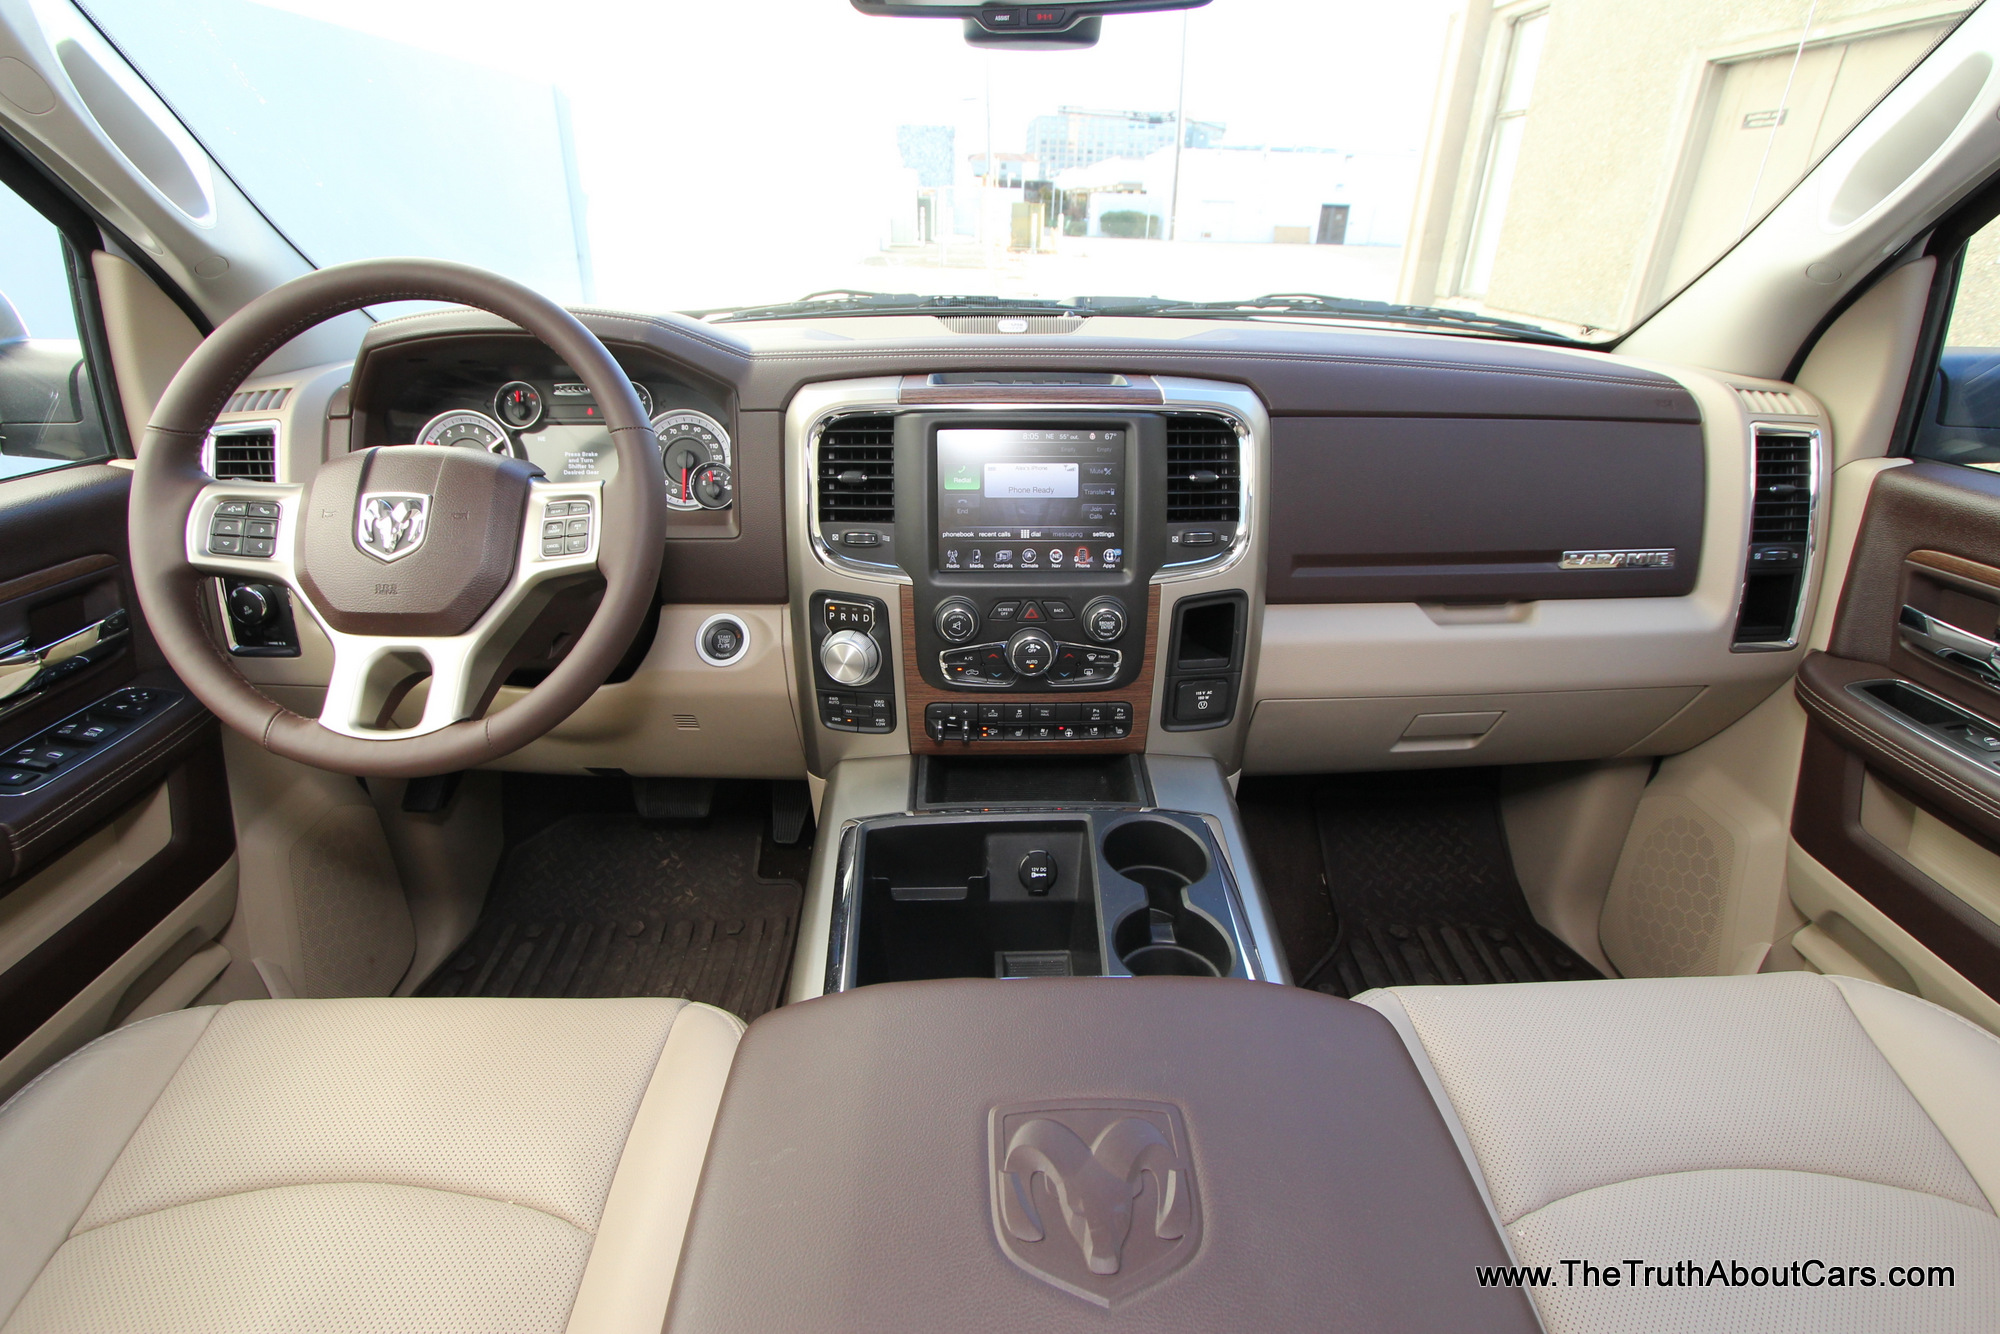 2014 ram 1500 eco diesel laramie interior 002 the truth about cars. Black Bedroom Furniture Sets. Home Design Ideas